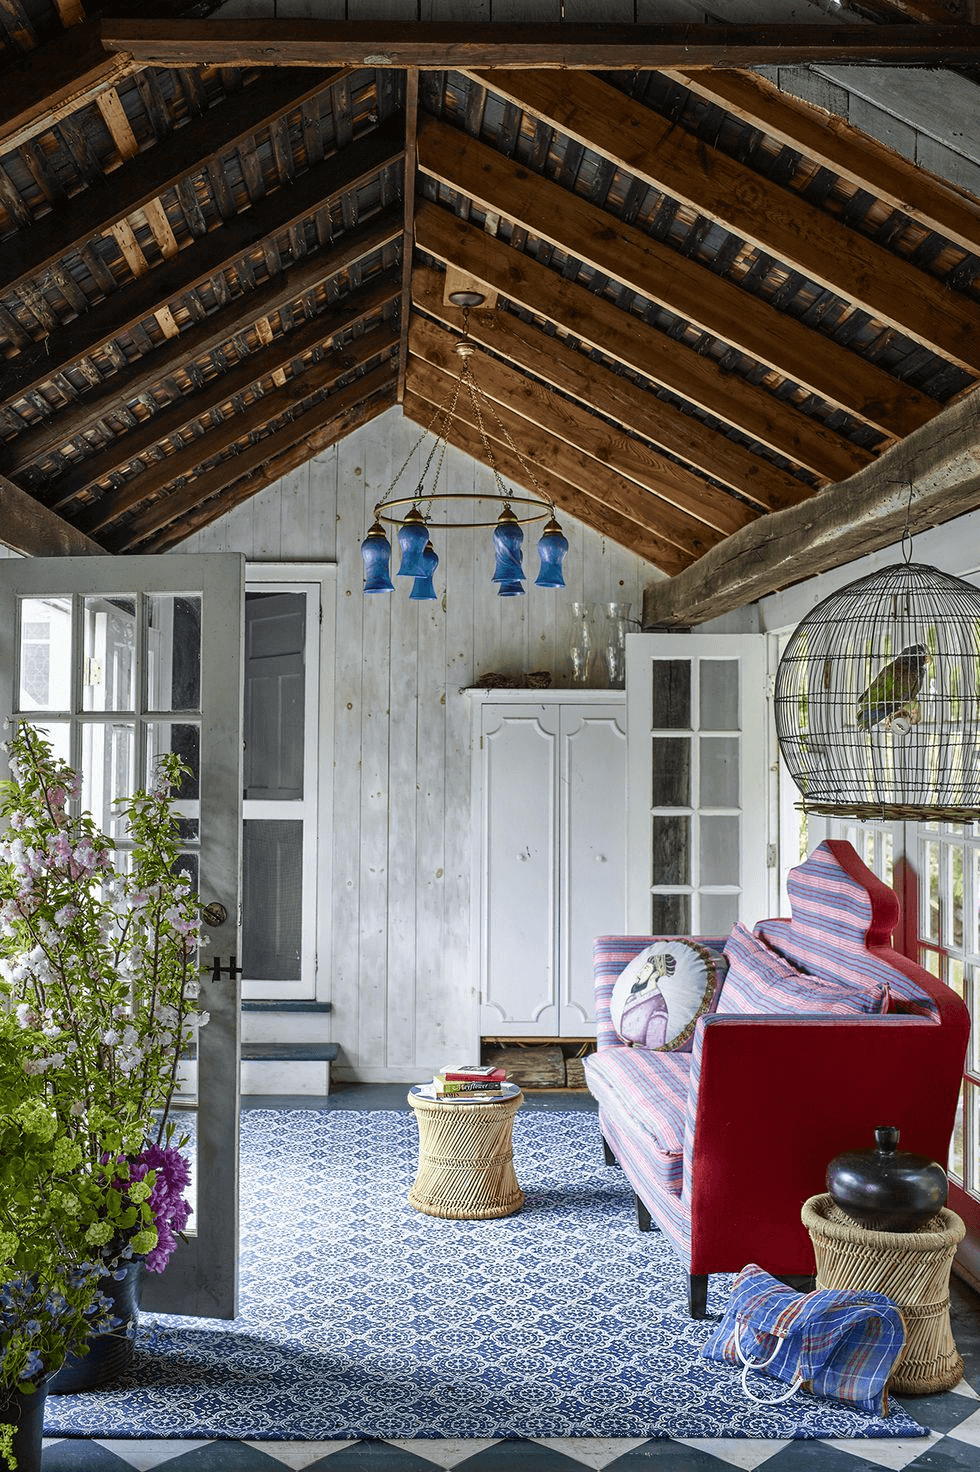 PORCH LIGHTING DESIGN IDEAS WITH BLUE SCONCHES